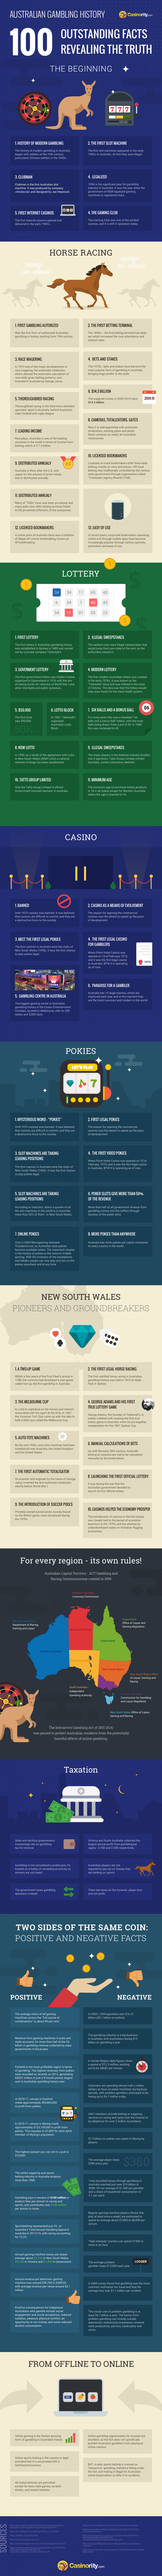 Amazing Facts About Australian Casino History [Infographic]